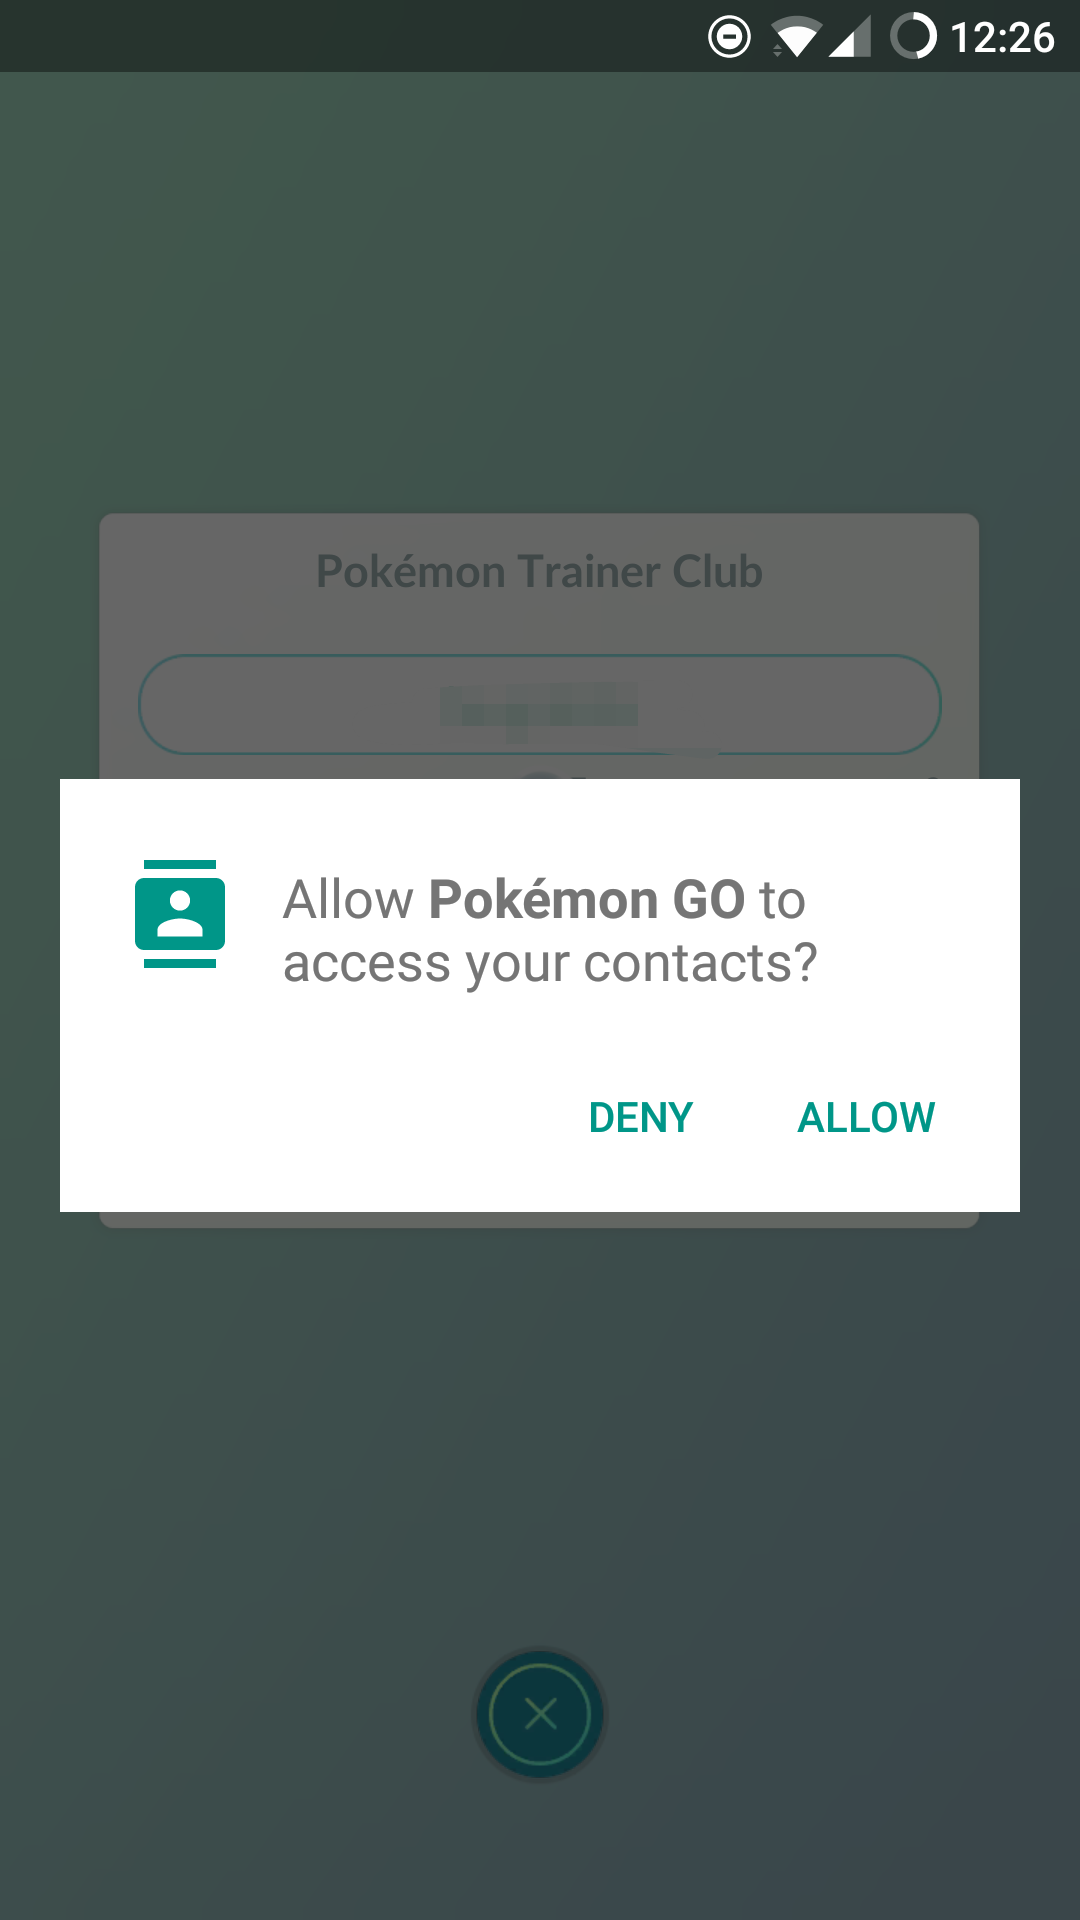 [Question] [Screenshot] Why does Pokémon GO need acces to my contacts? (0.73.1)